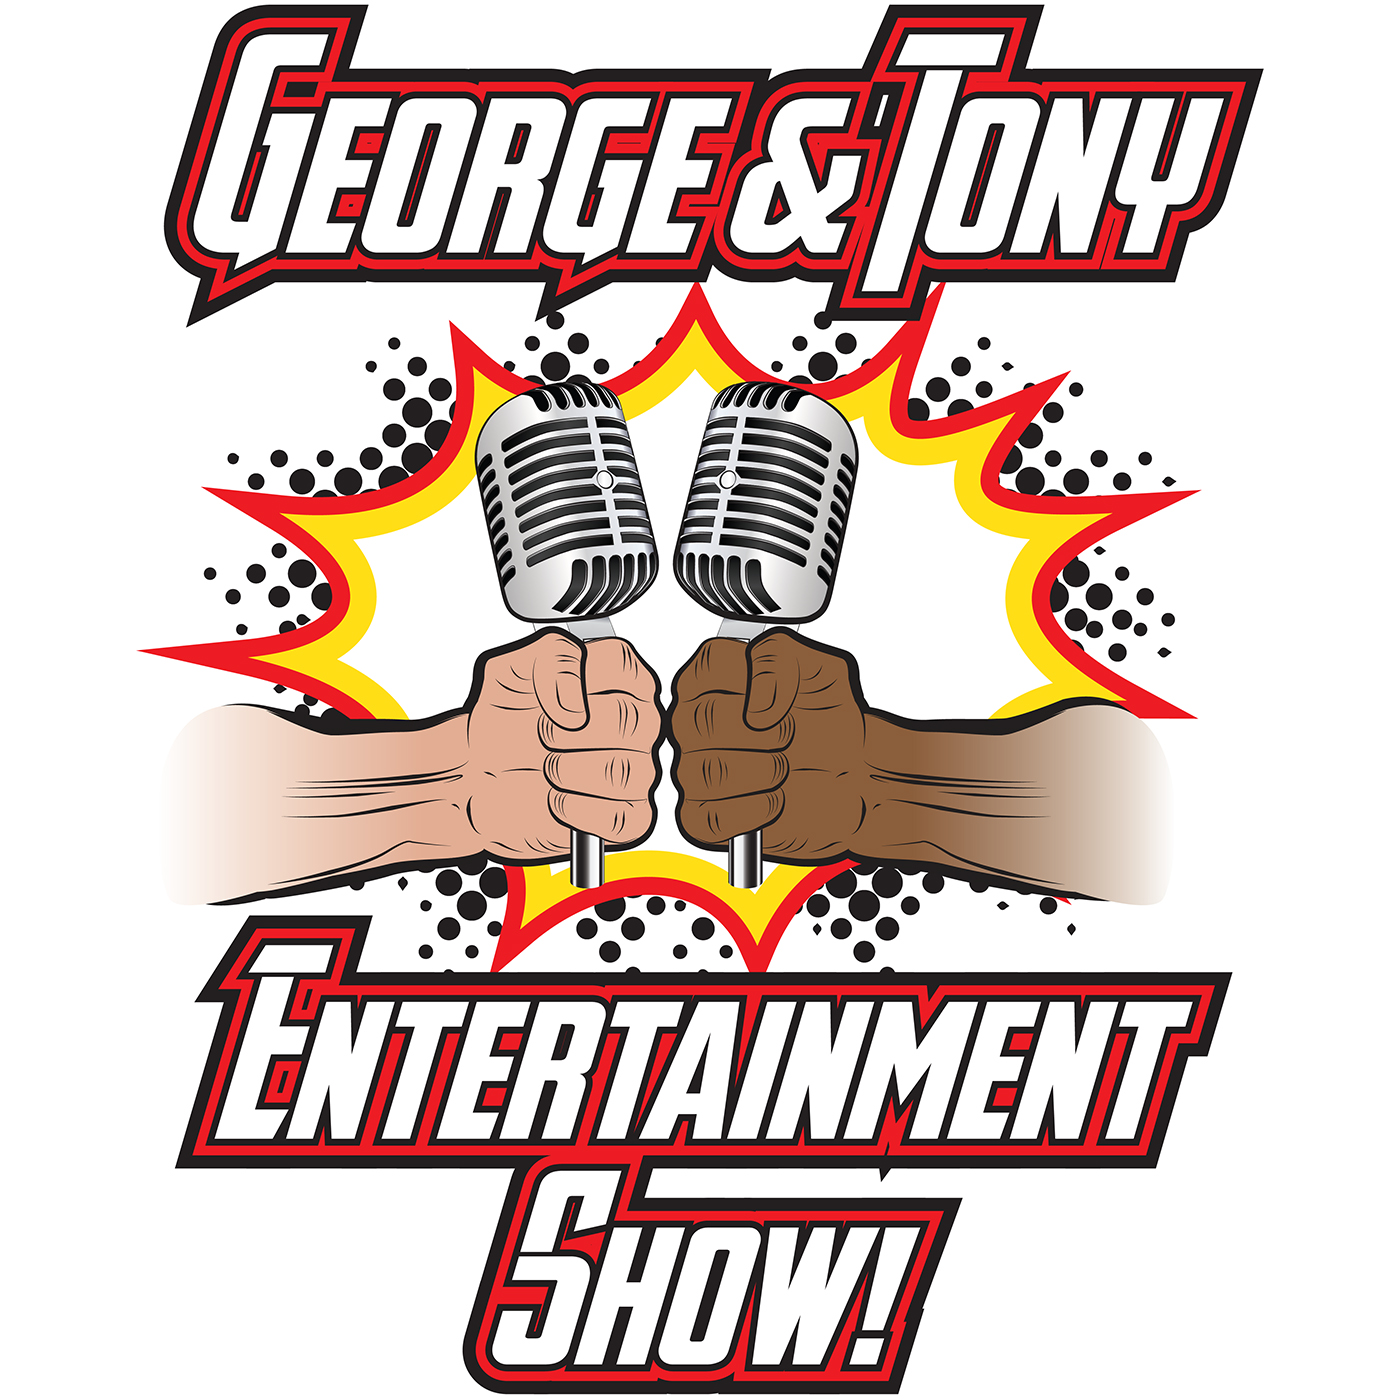 George and Tony Entertainment Show #42